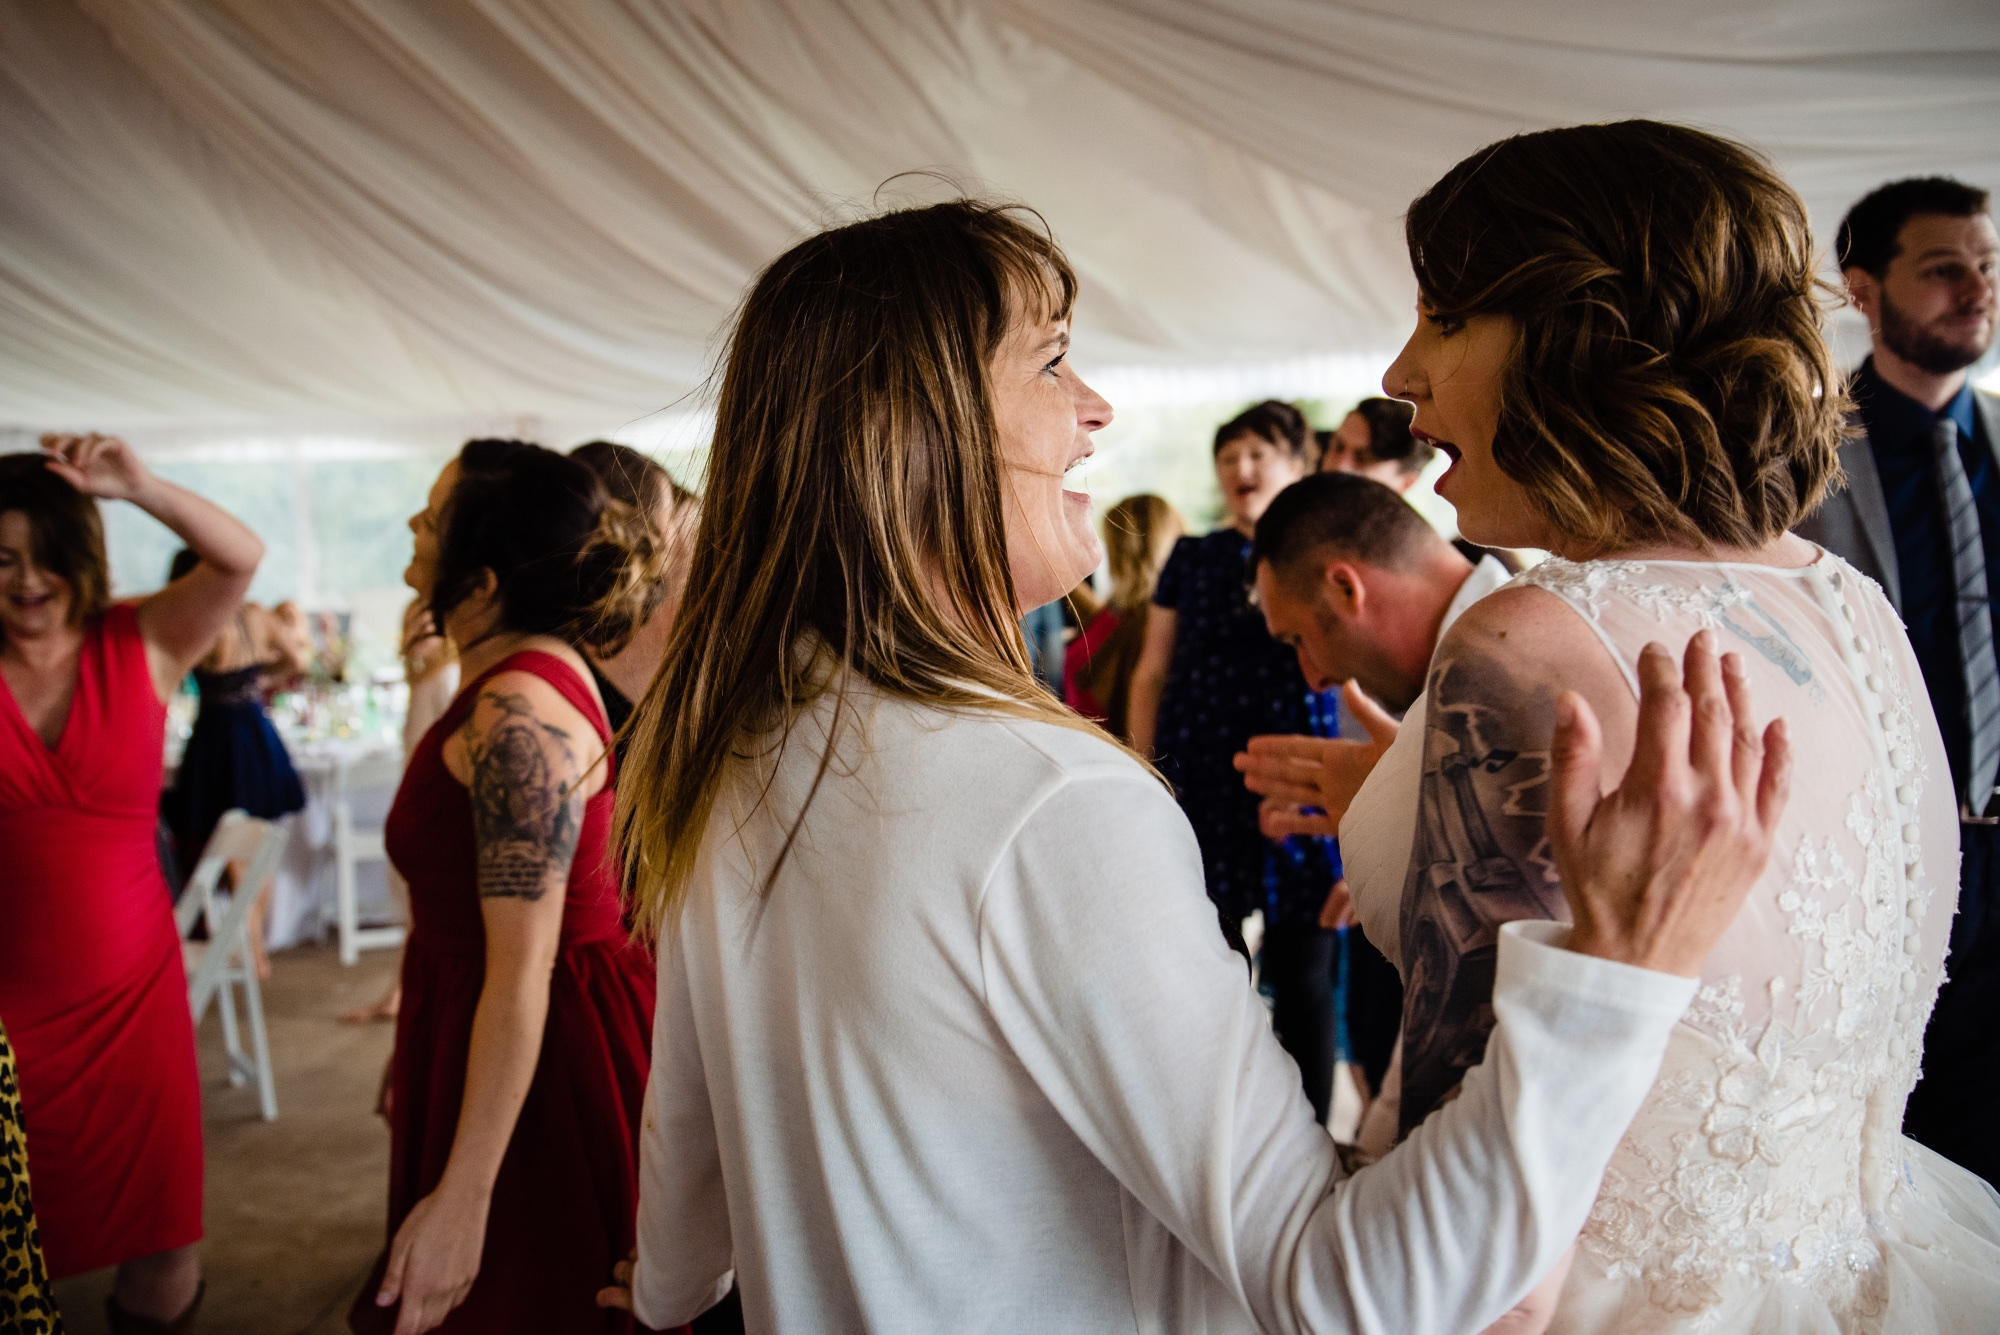 lindseyjanephoto_wedding0116.jpg